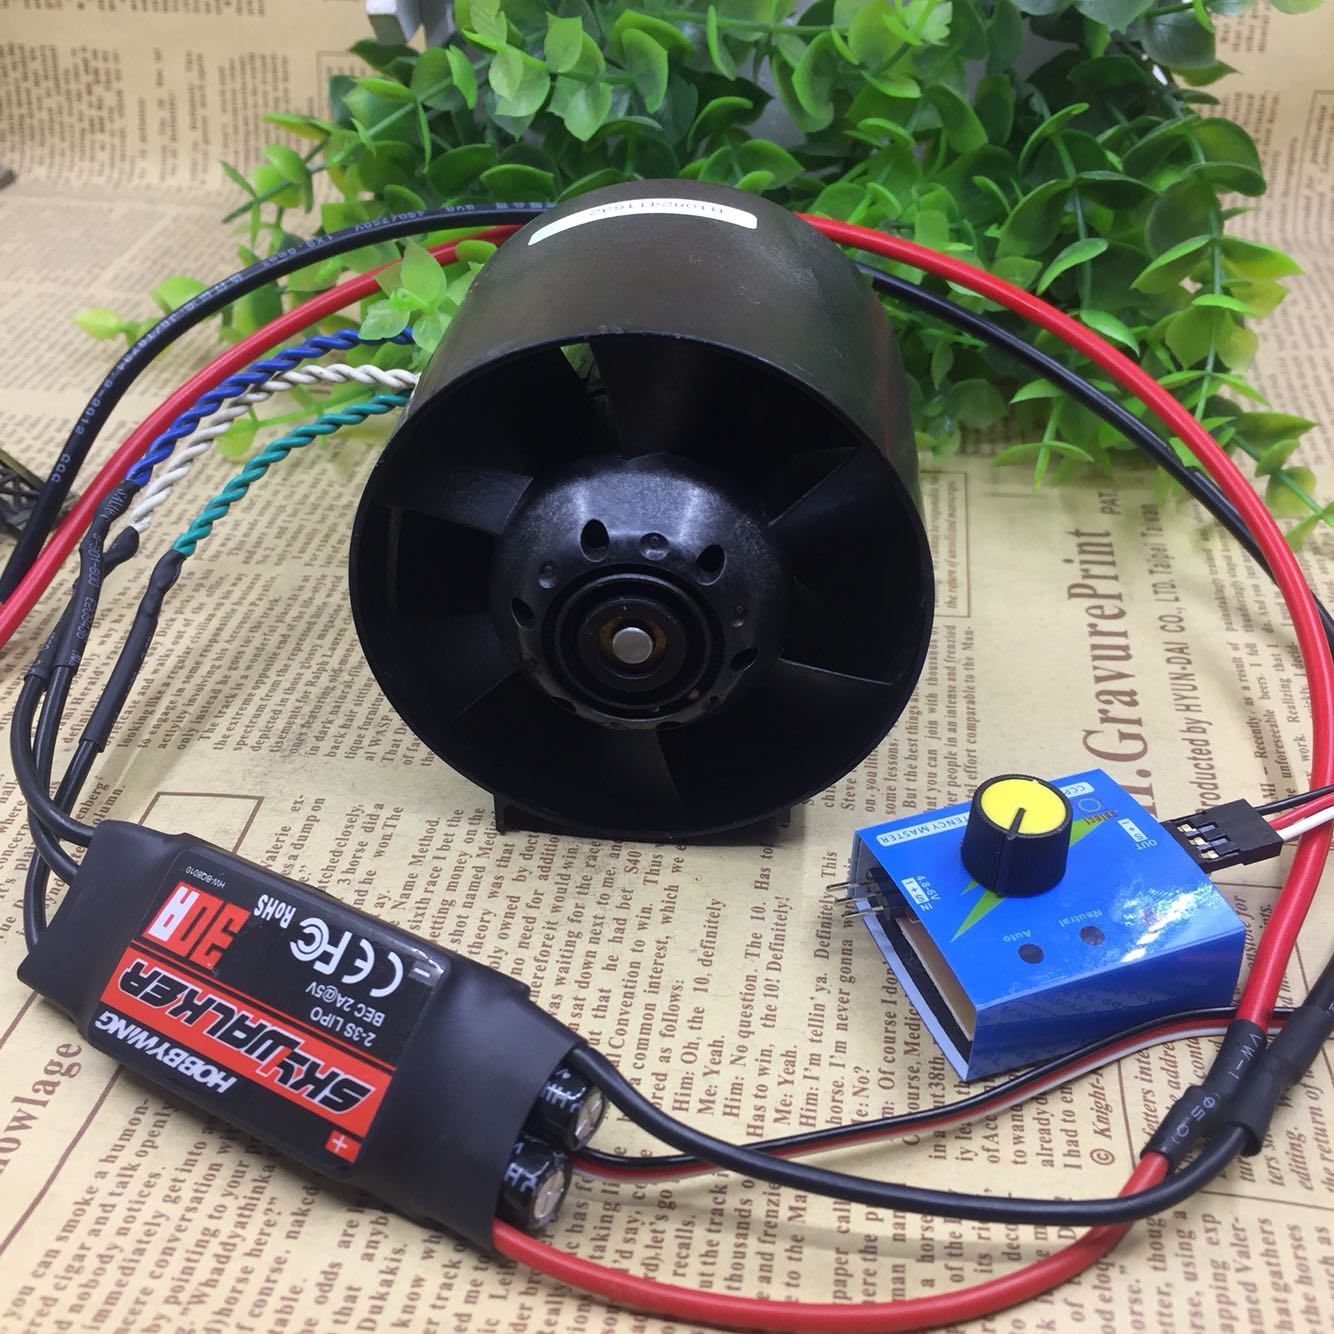 Violence all plastic ducted fan rotor brushless DC motor high-speed turbo  fan 12V 7A